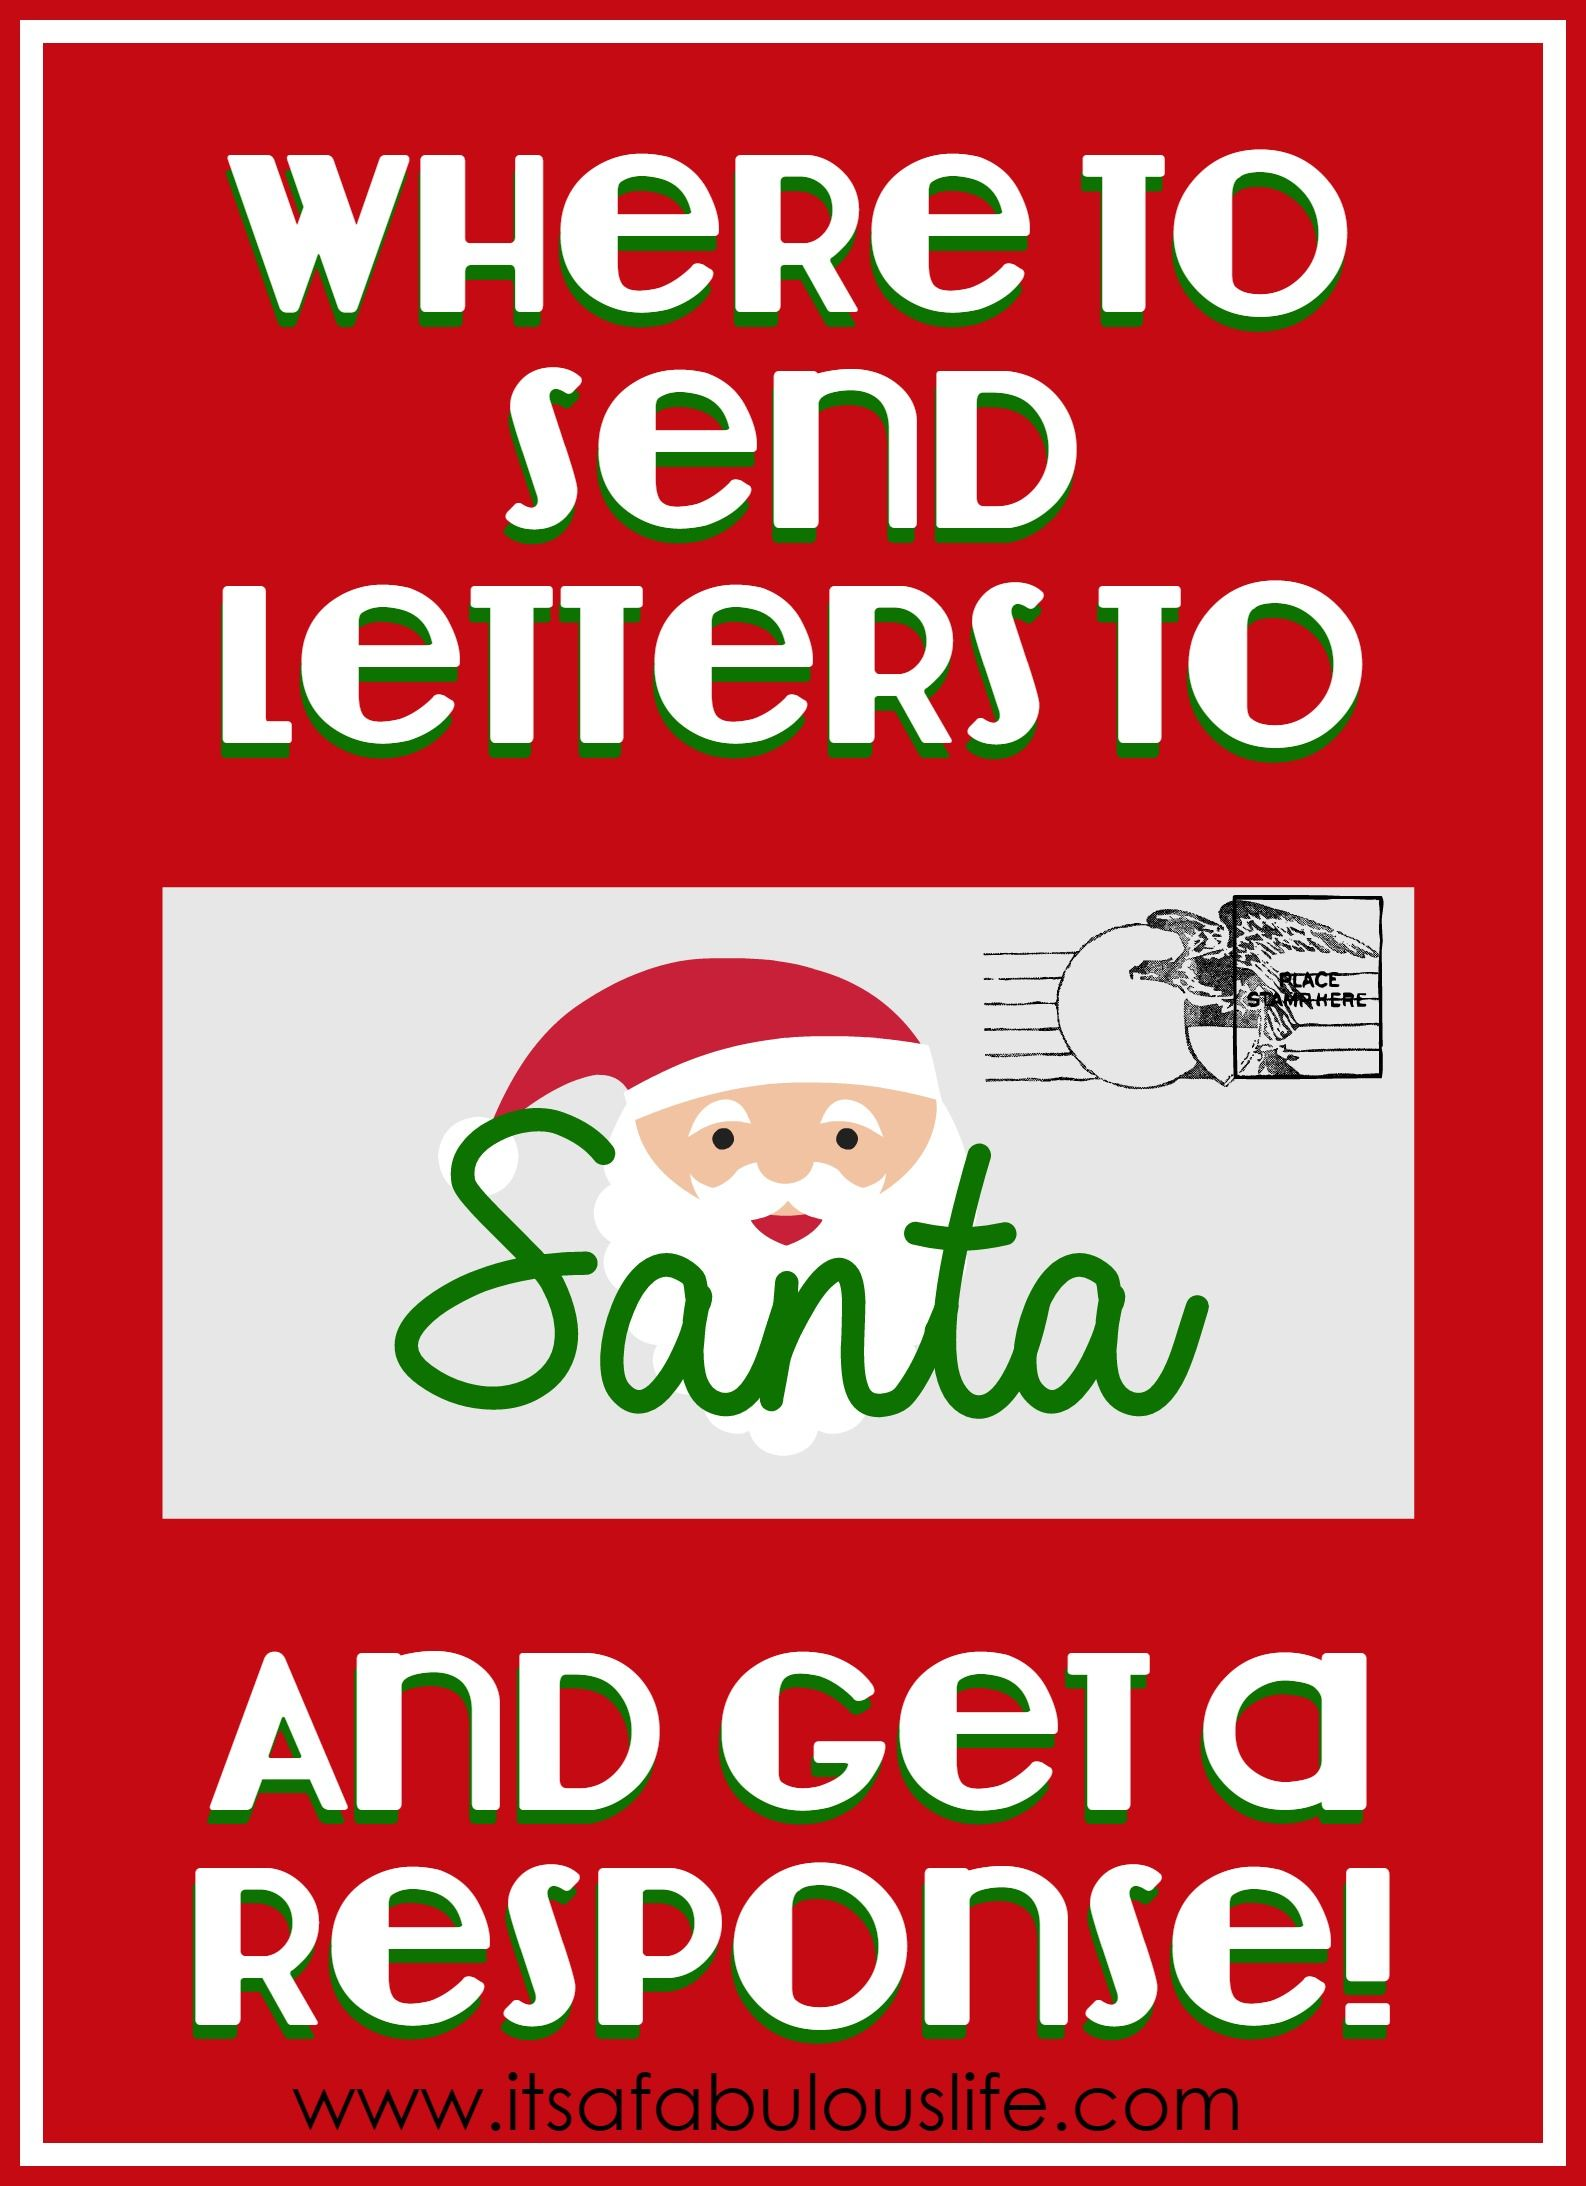 Where To Send Letters To Santa & Get a Response